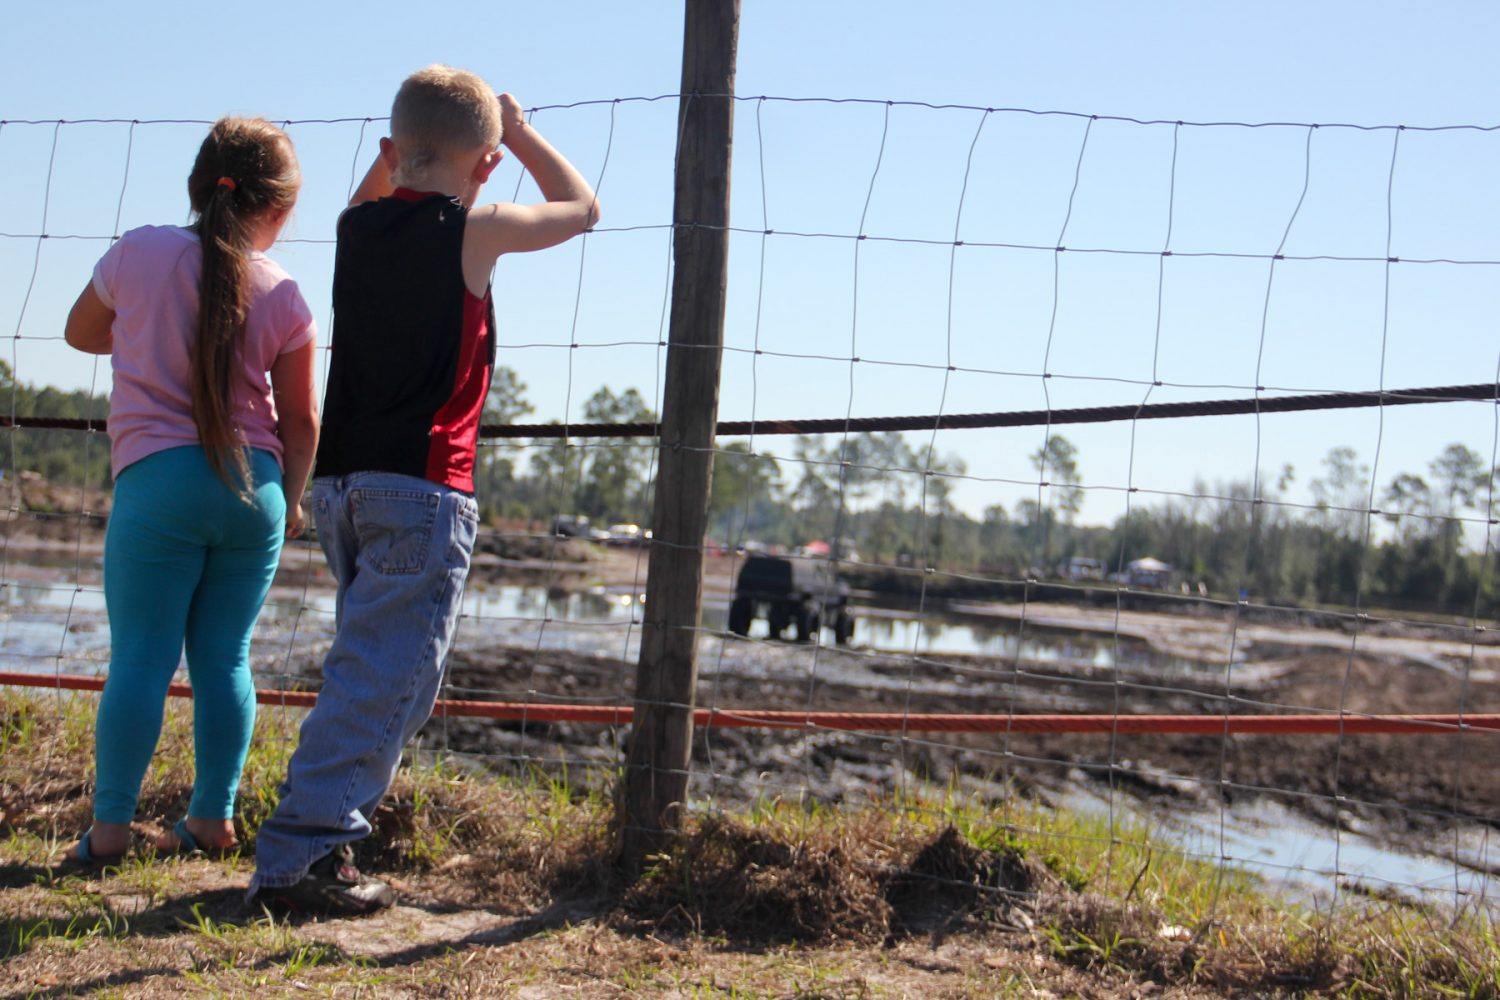 Children watch as a truck races through the mud pit at Hog Waller in Palatka, Fla. on Sunday afternoon, March 2, 2014.